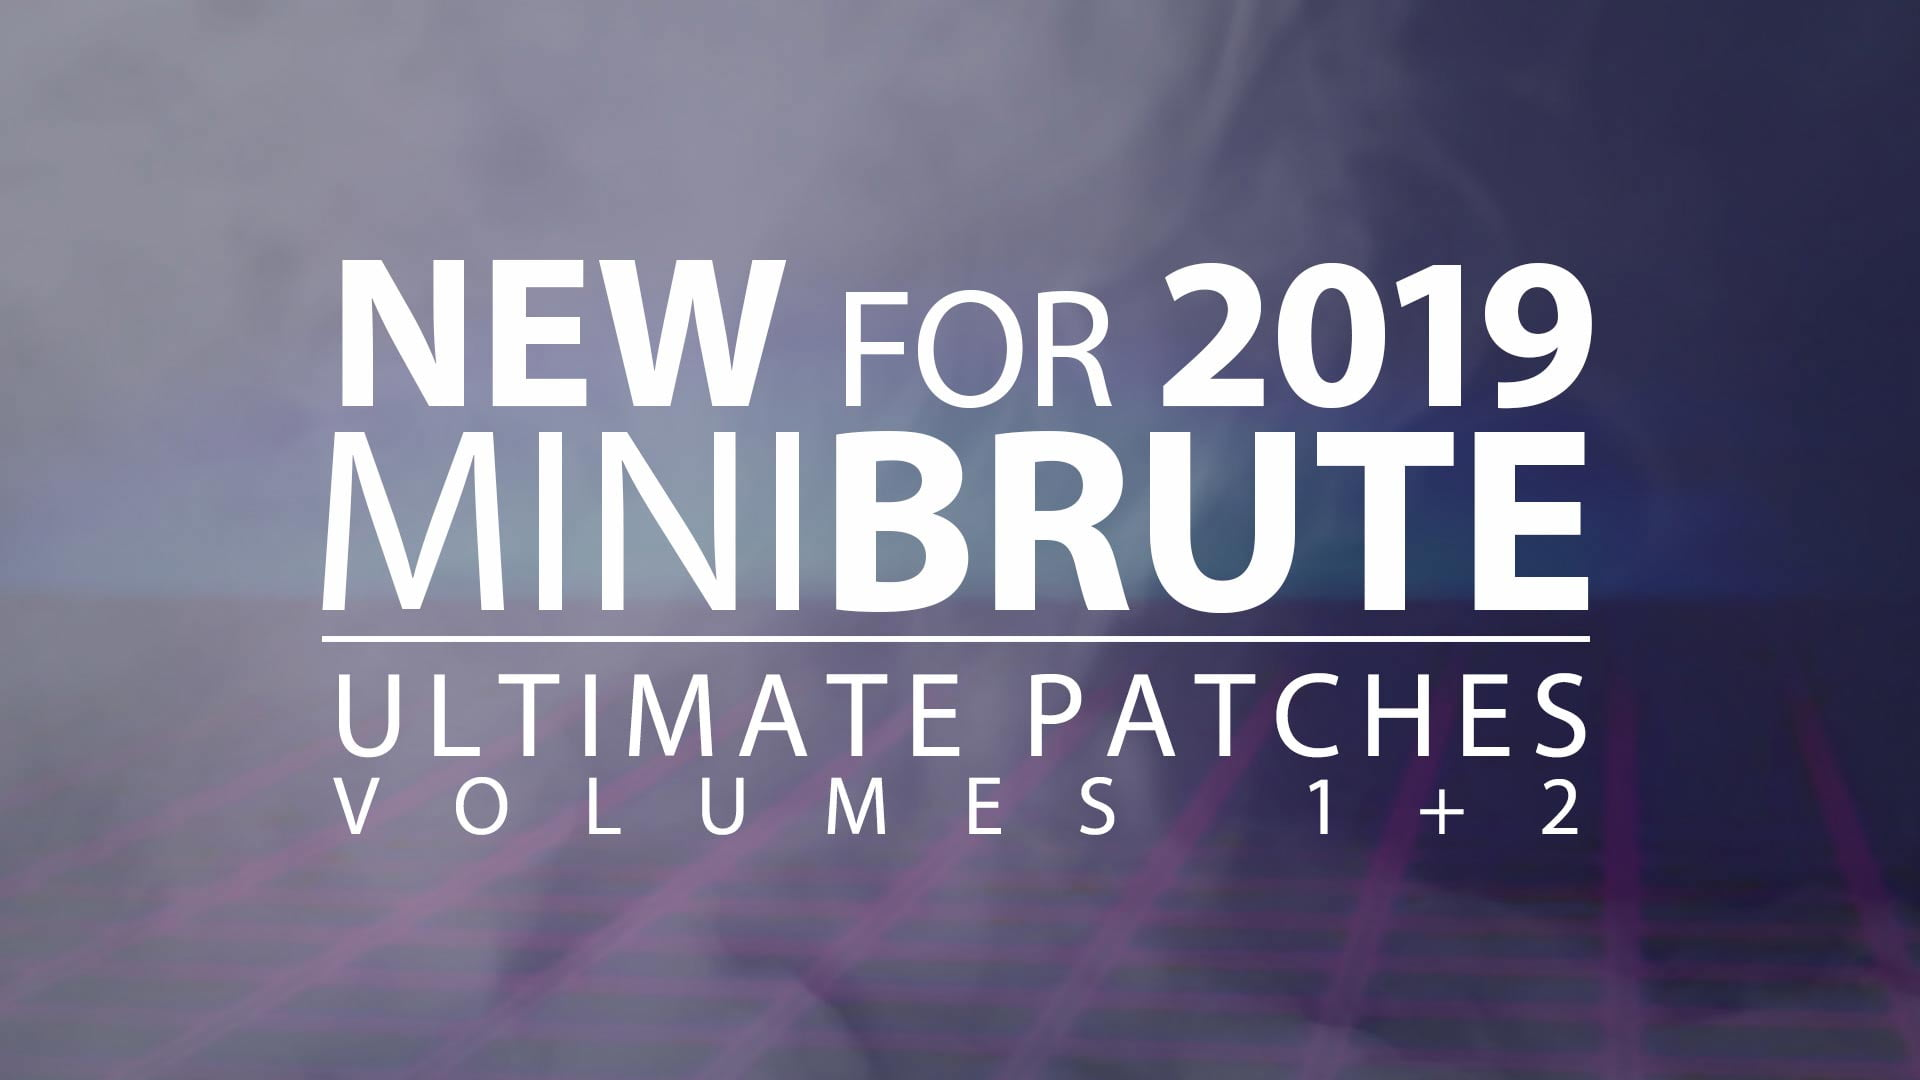 Ultimate Patches releases Arturia Minibrute Ultimate Patches (Vol 1+2)